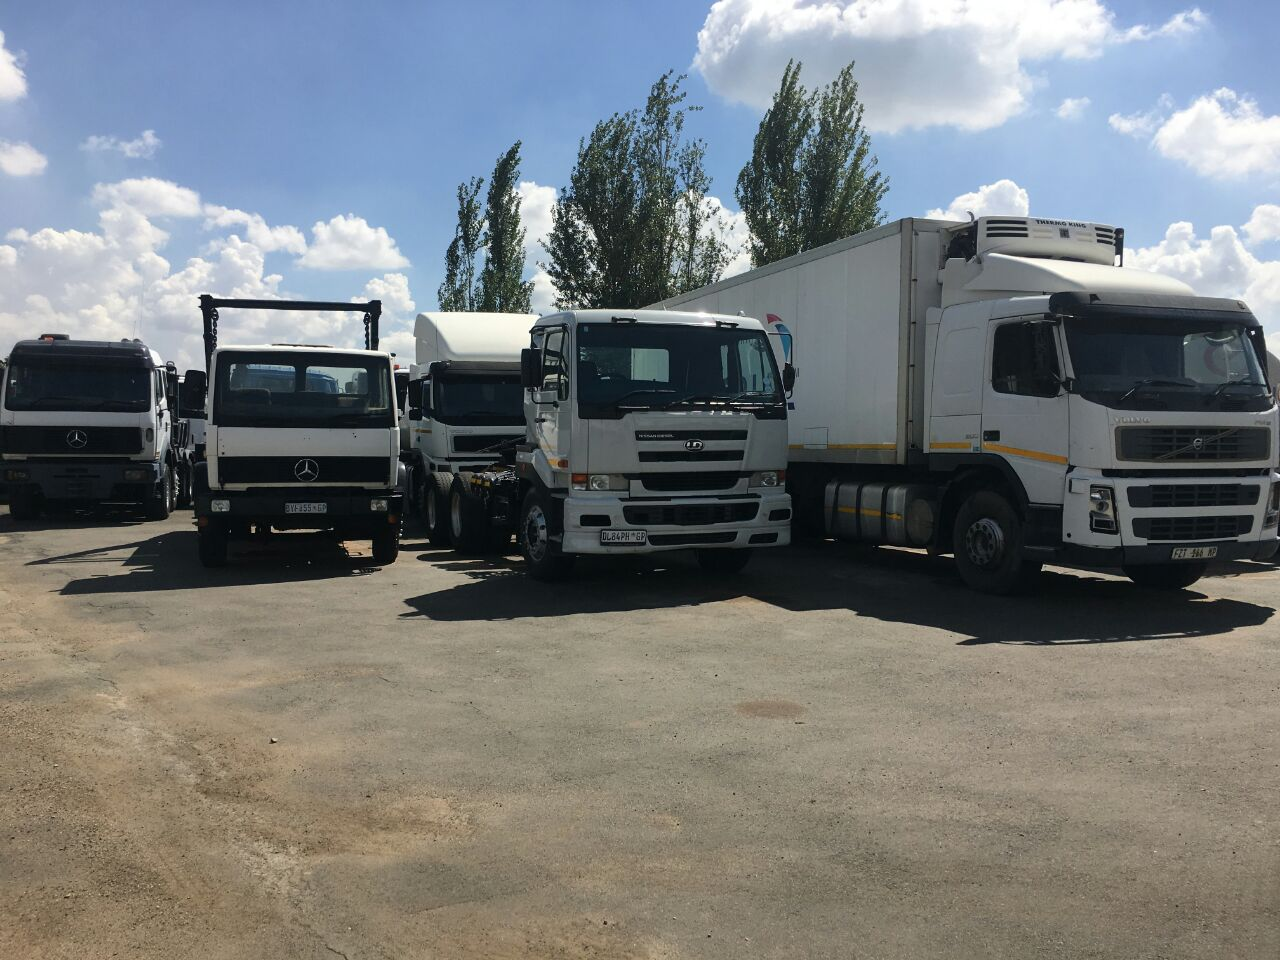 GET TWO TRUCKS OR MORE WITH TRAILERS AND WORK IN ONE OF THE BLUE-CHIP COMPANY. CONTACT DUMISANI ON 0747744729